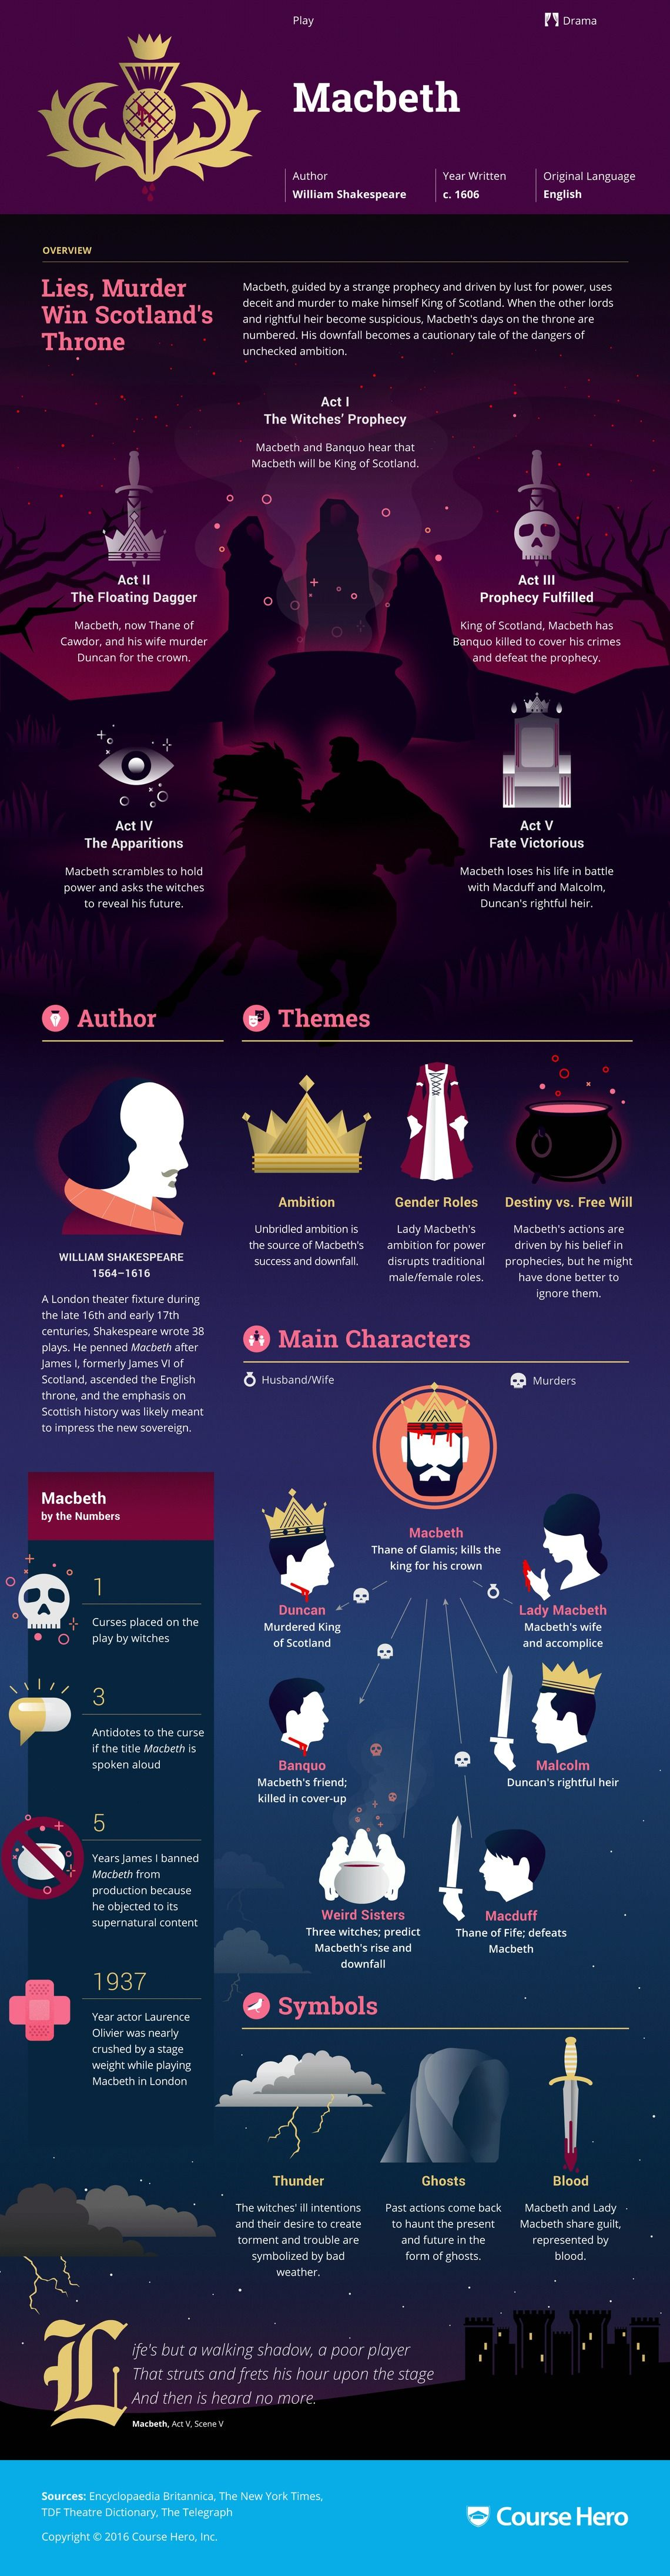 macbeth infographic course hero araclar  william shakespeare s macbeth infographic to help you understand everything about the book visually learn all about the characters themes